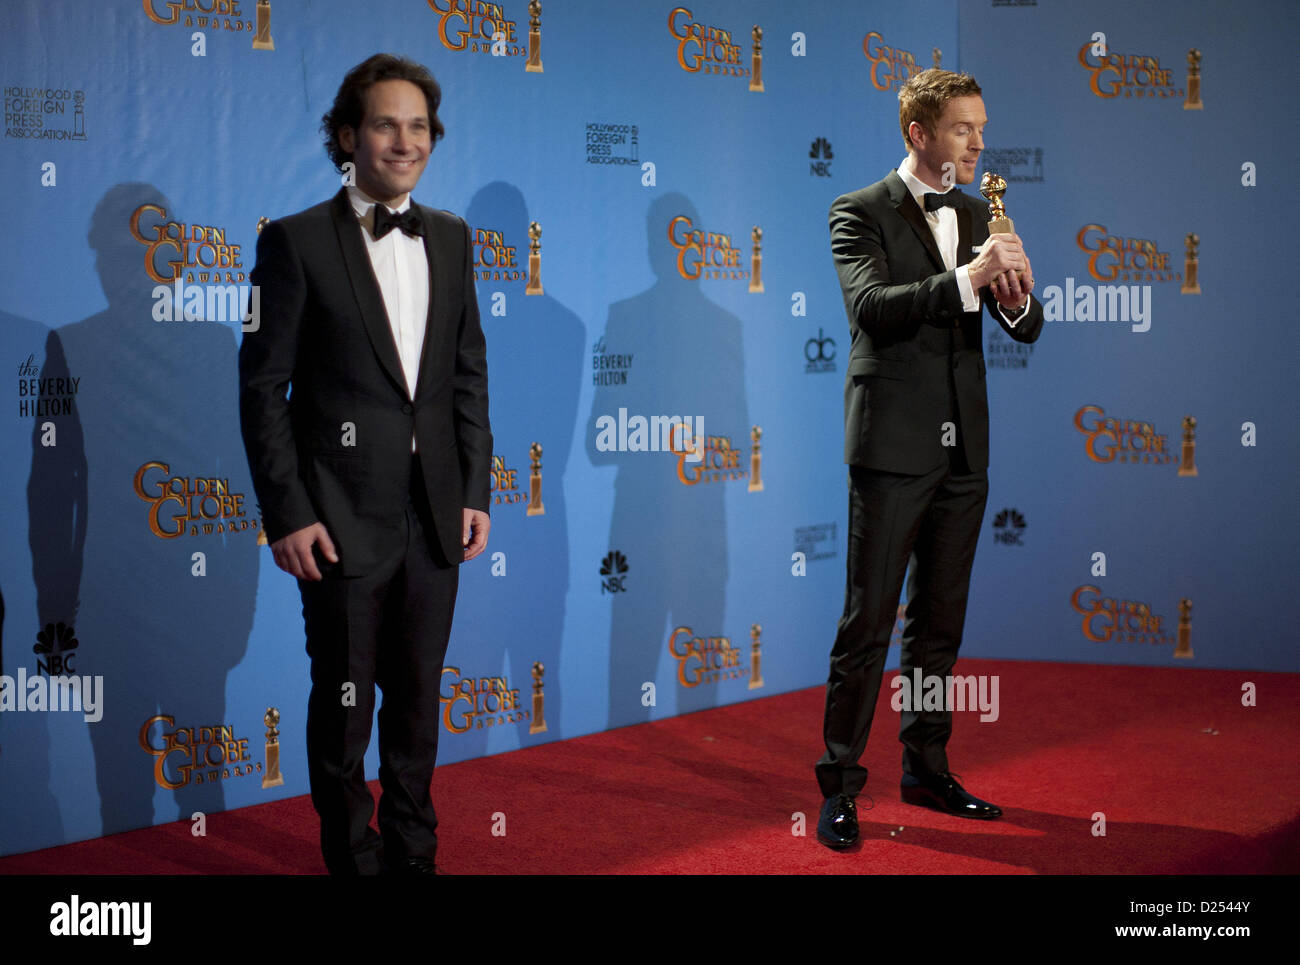 Beverly Hills, California, USA. 13th January 2013.  Pictured: Actor Paul Rudd; Actor Damian Lewis, winner of Best - Stock Image